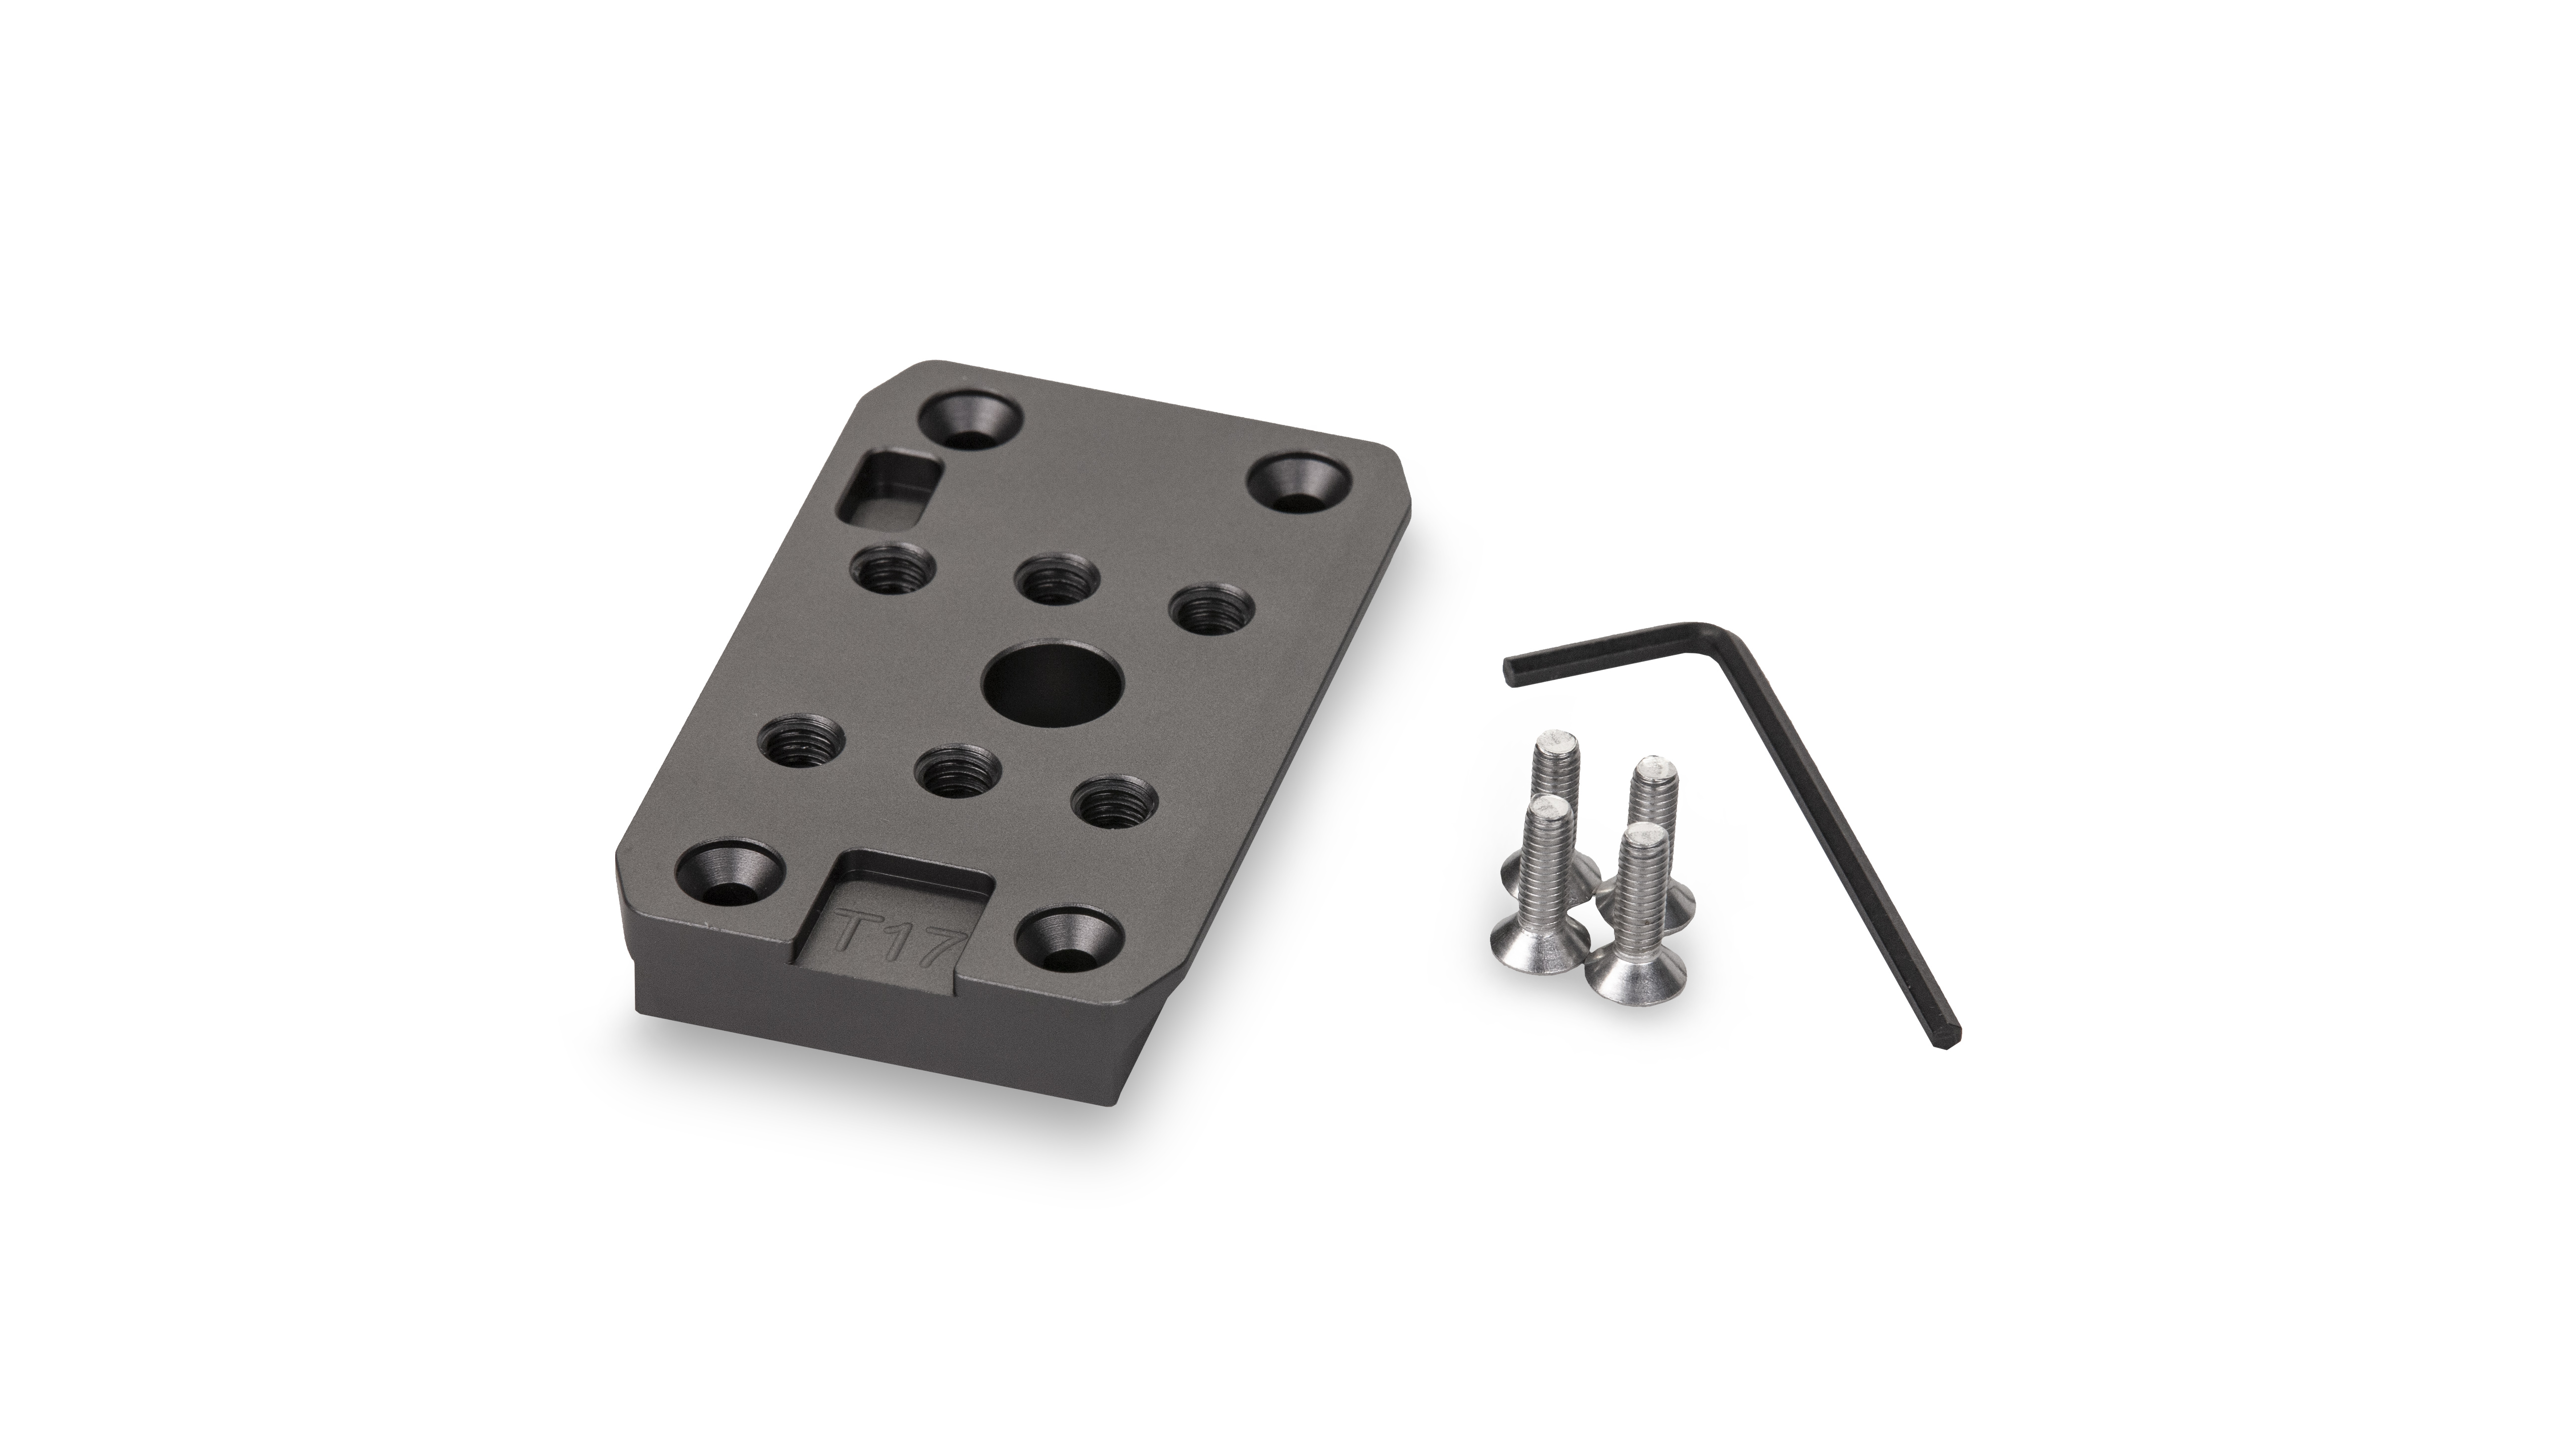 Bottom Plate for Sony a7/a7S